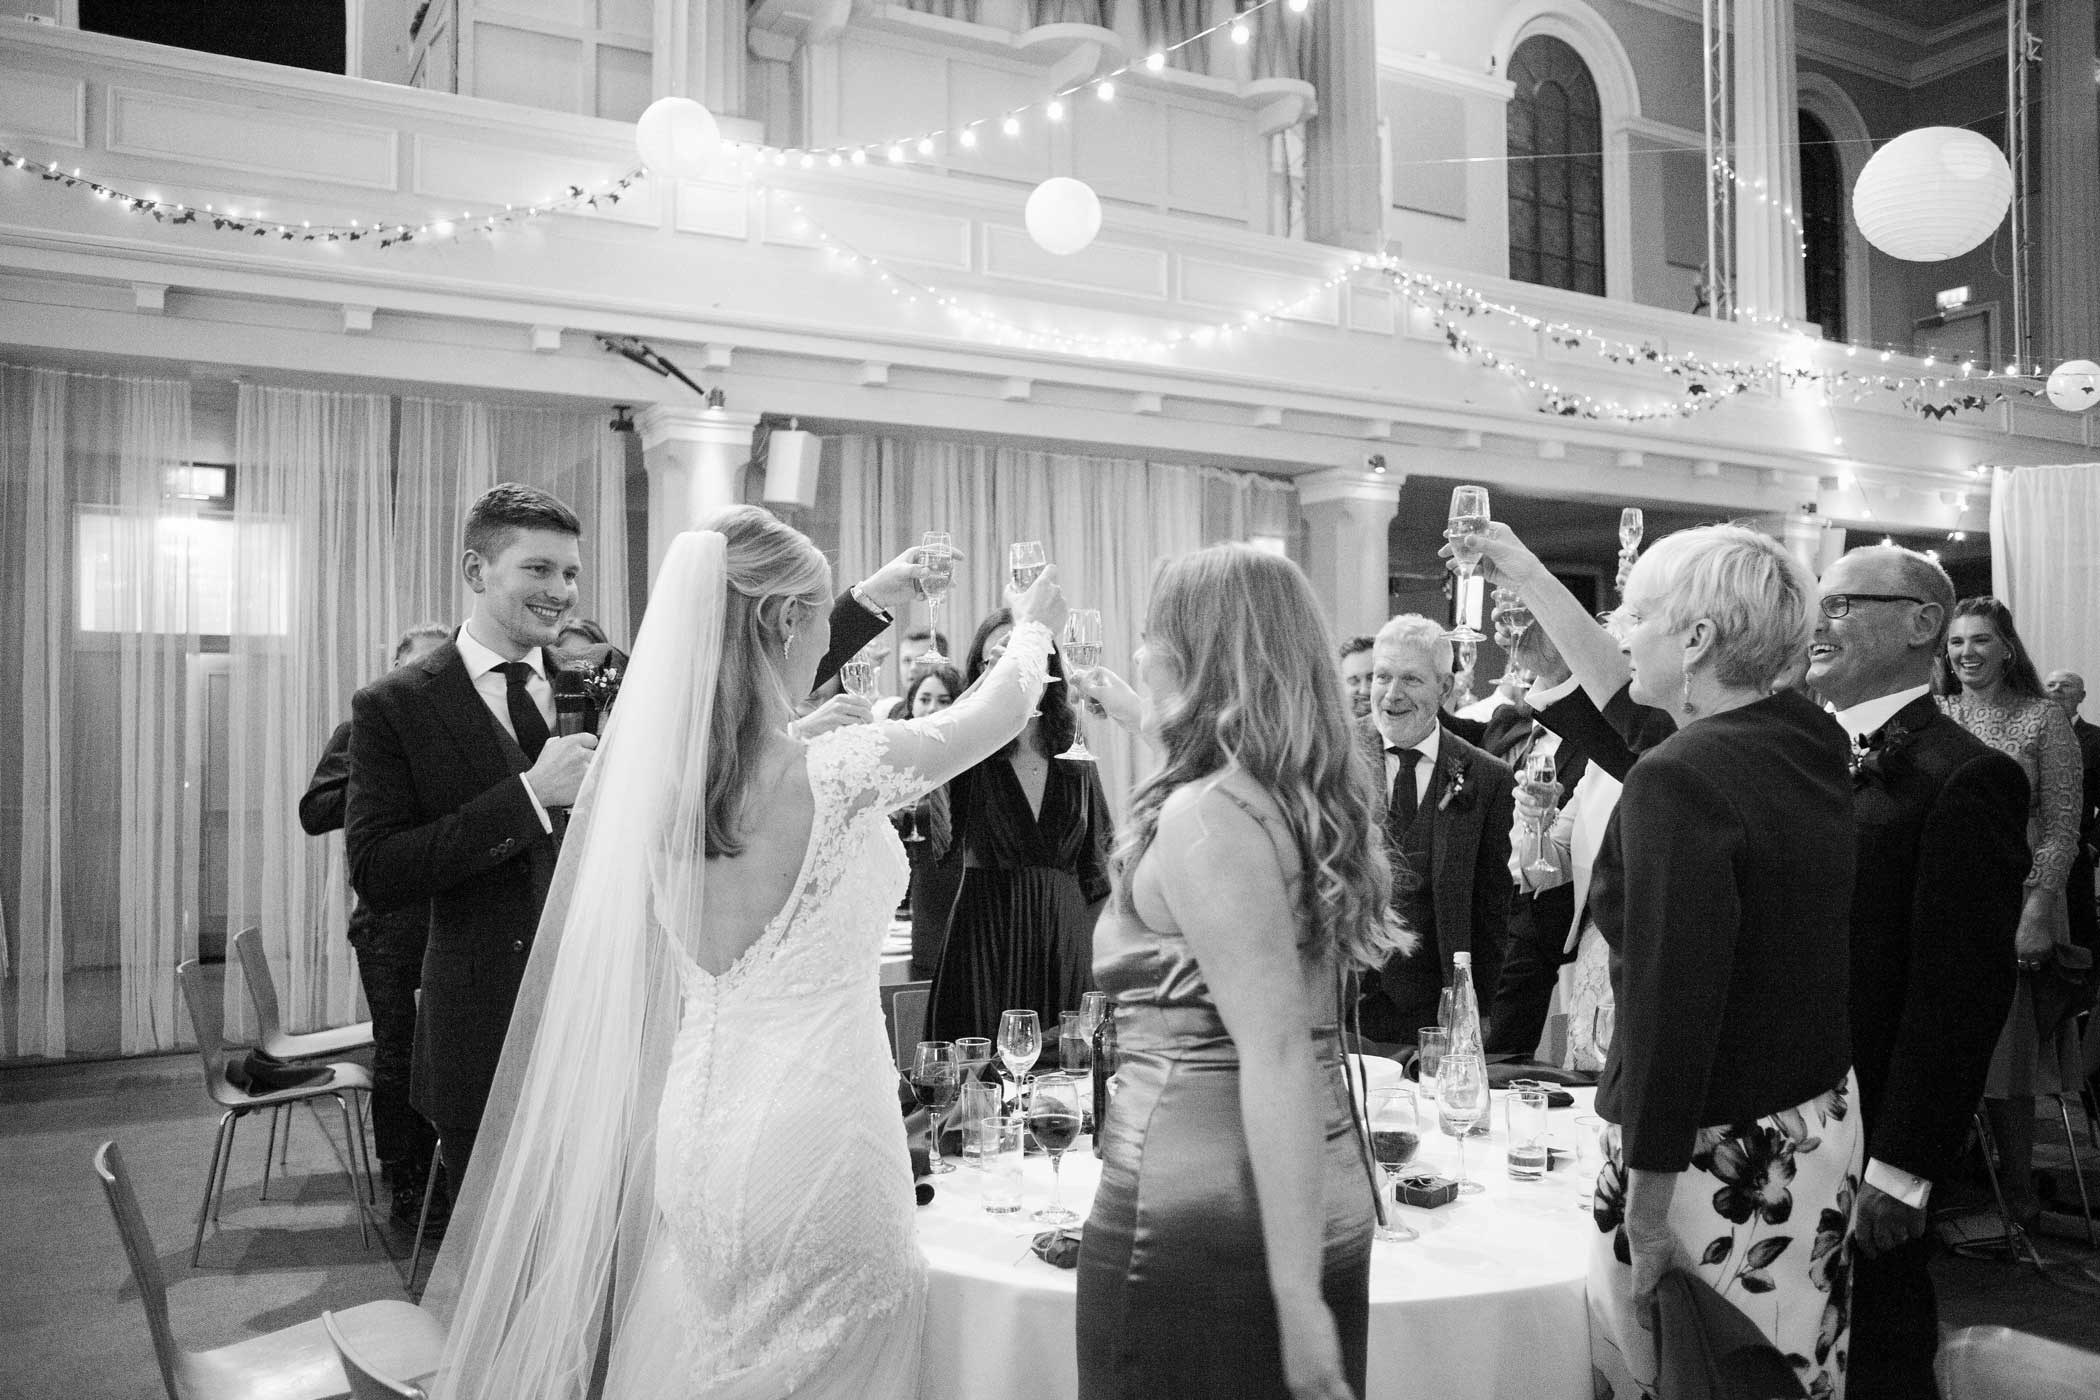 Toasting the bride and groom in black and white